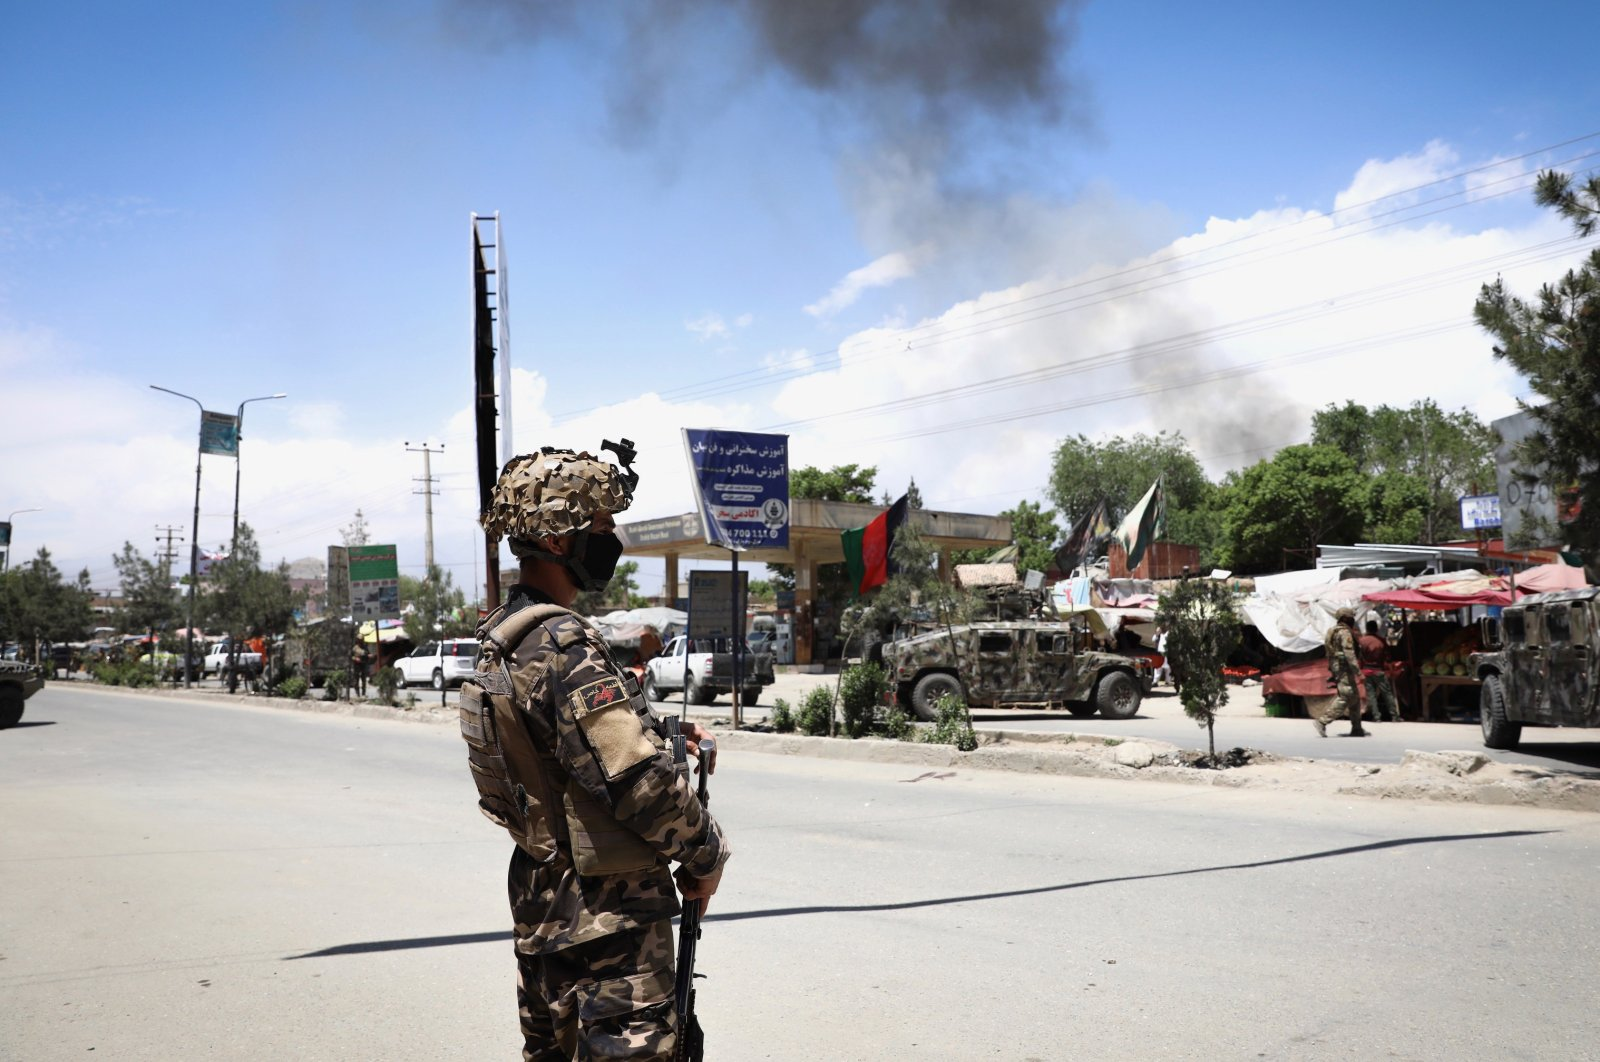 An Afghan soldier stands guard near the scene of an attack at an MSF (Doctors without Borders) clinic in Kabul, Afghanistan, May 12, 2020. (EPA Photo)